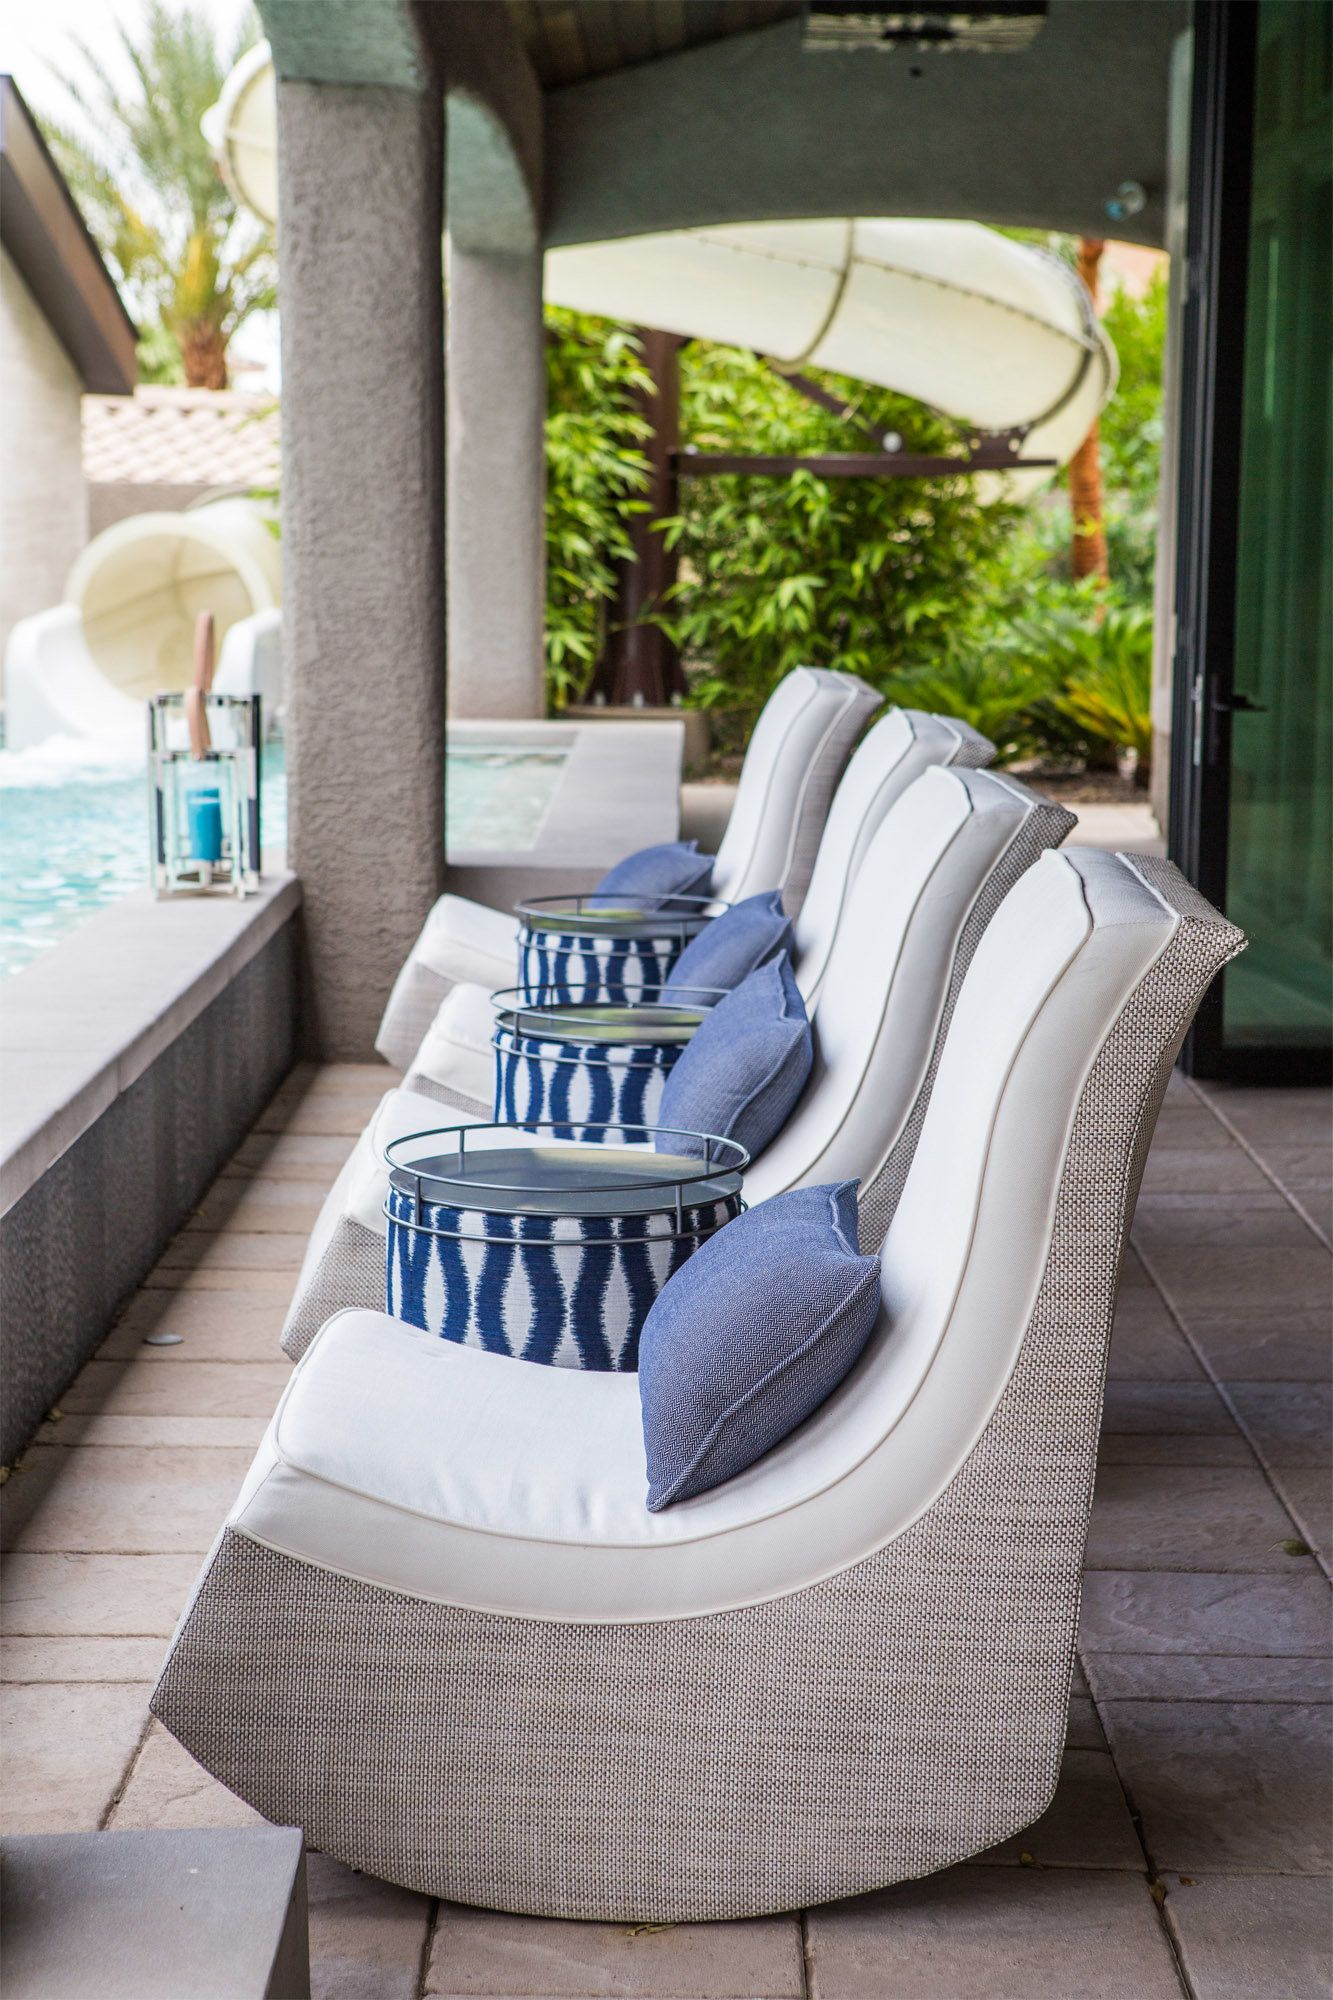 Best 25 Contemporary rocking chairs ideas on Pinterest